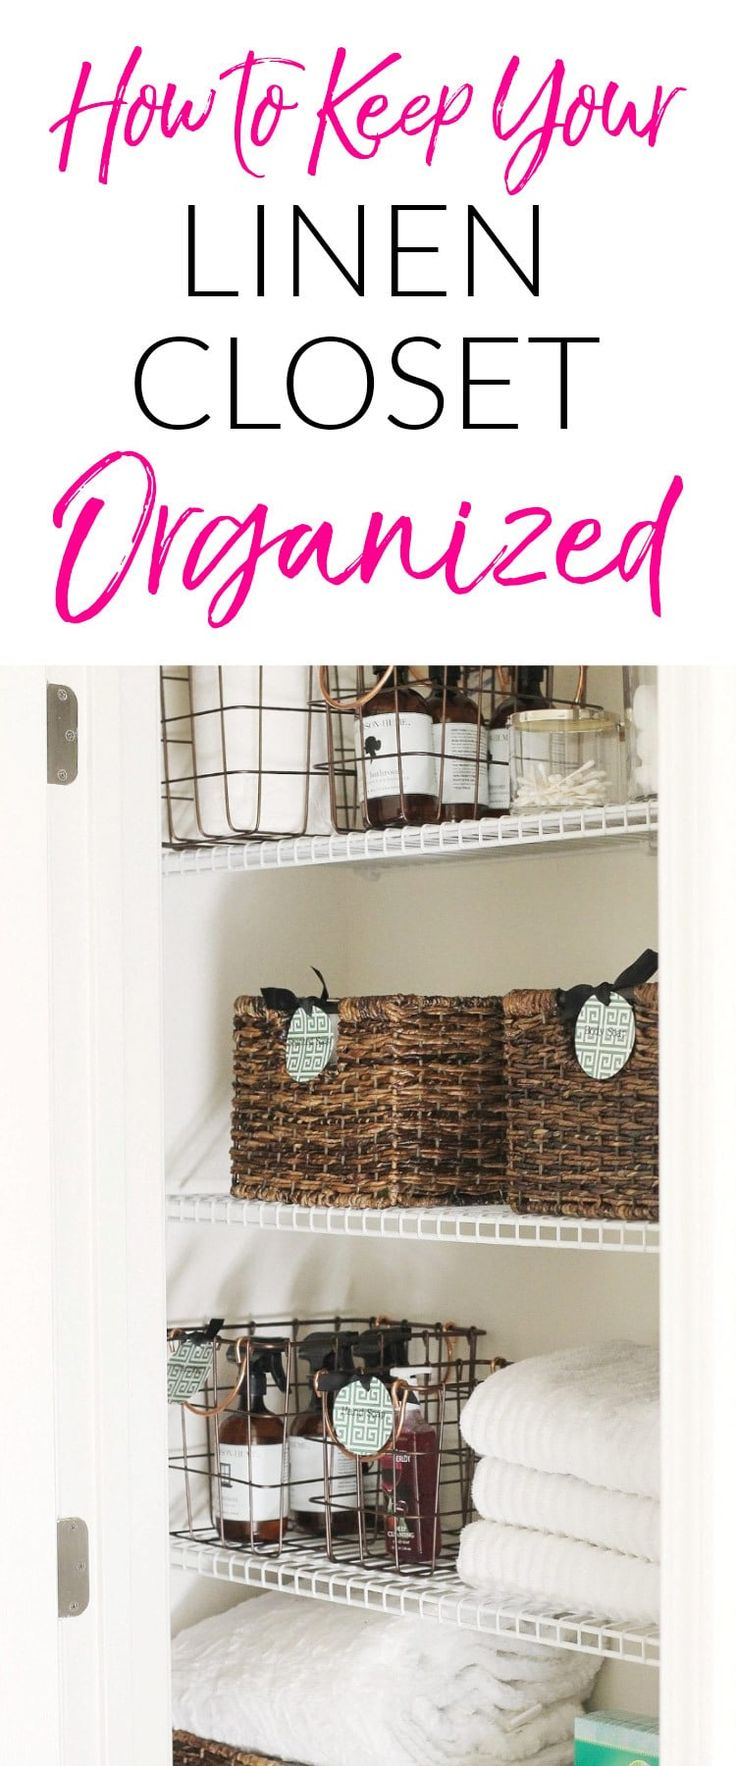 Keep Your Linen Closet Organized AND Smelling Great with These Quick, Functional, and Cheap Ideas for Linen Closet Organization.